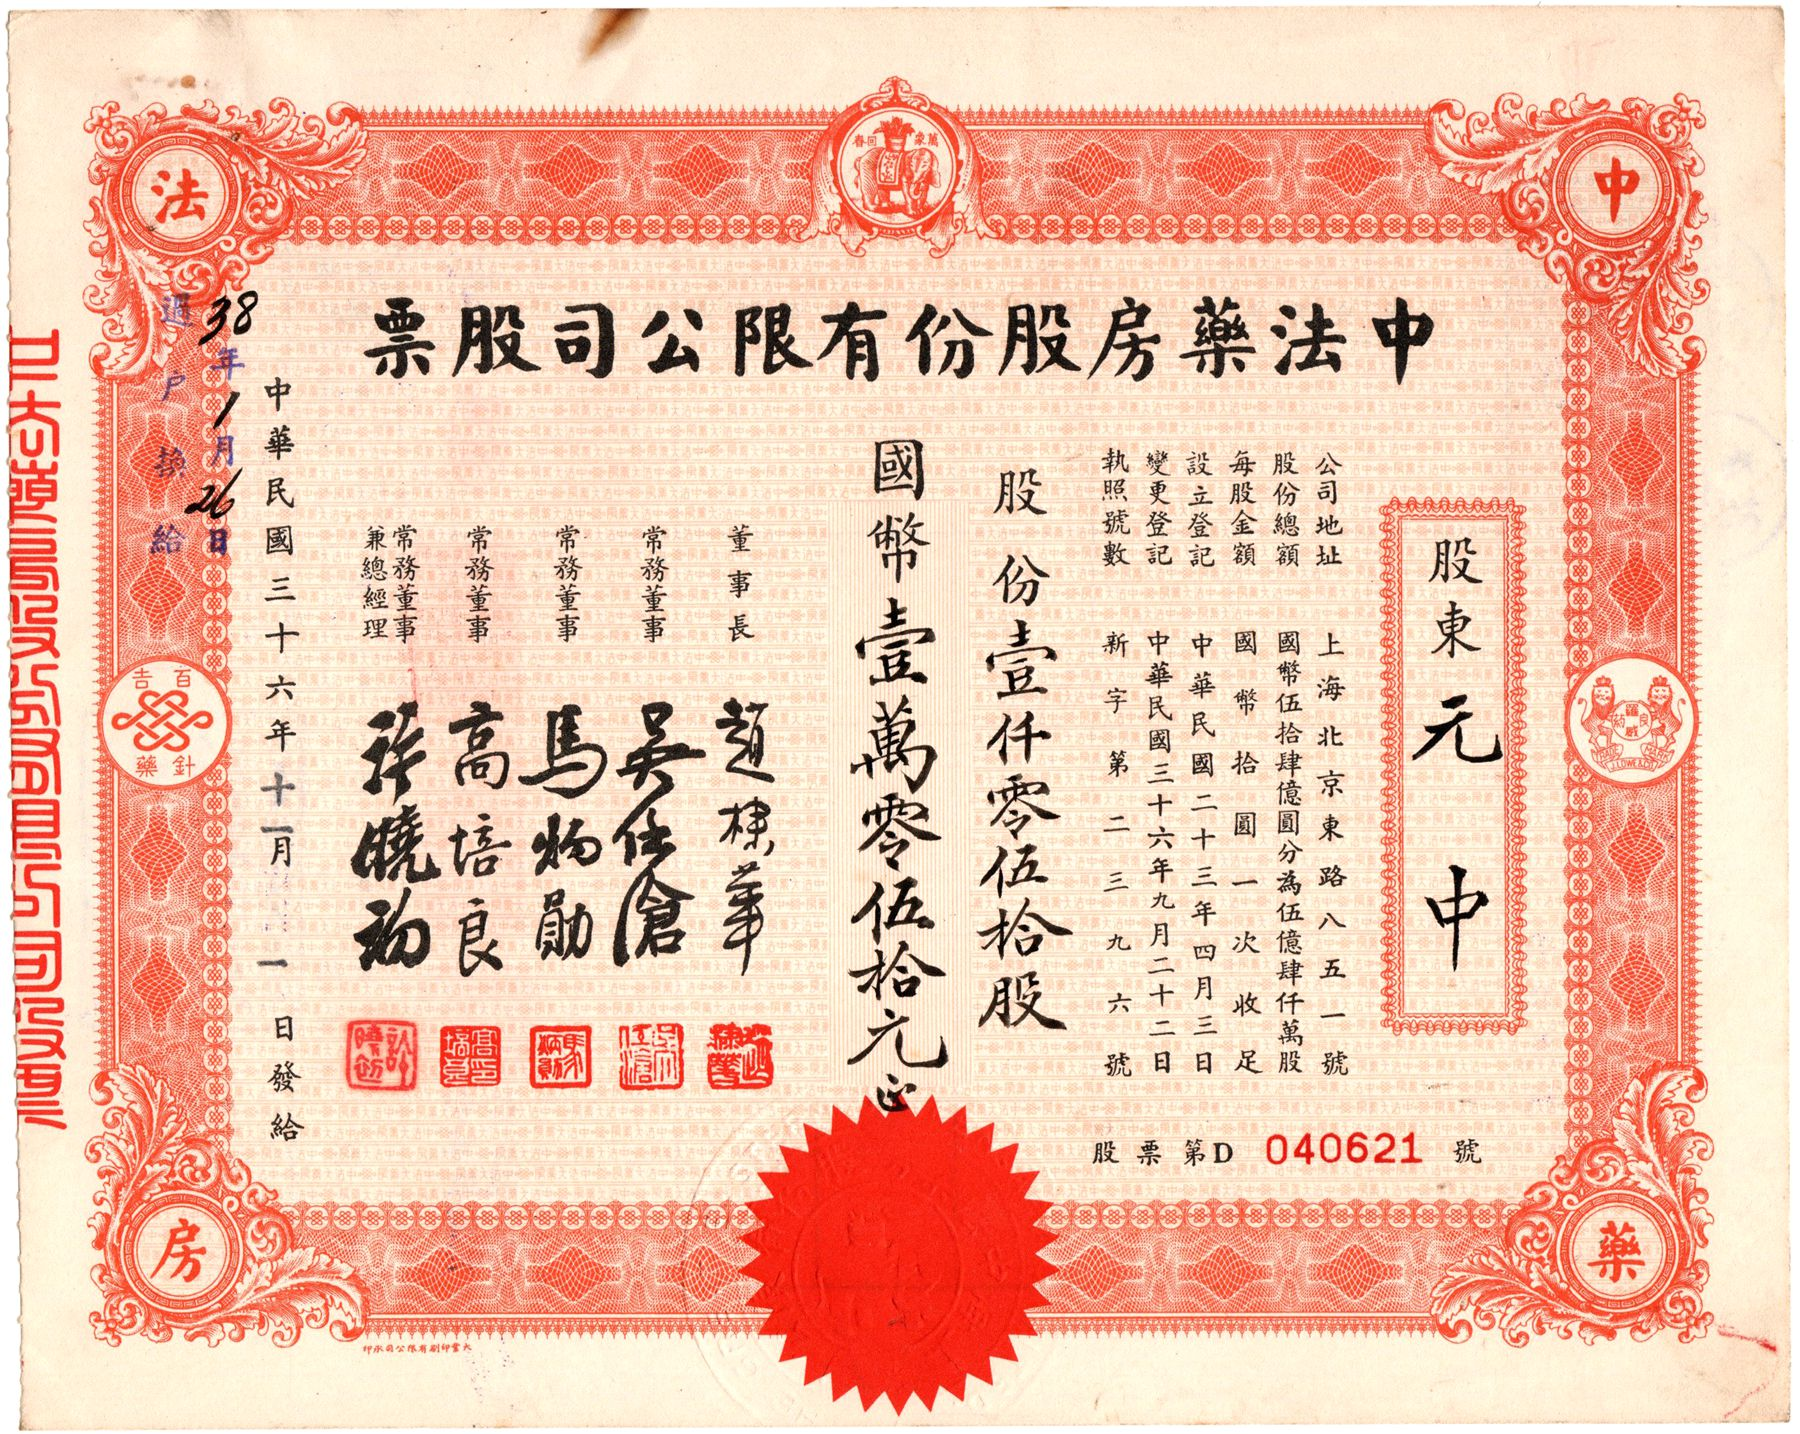 S1028, Sino-French Pharmacy Co, Stock Certificate of 10,000 Shares, 1947